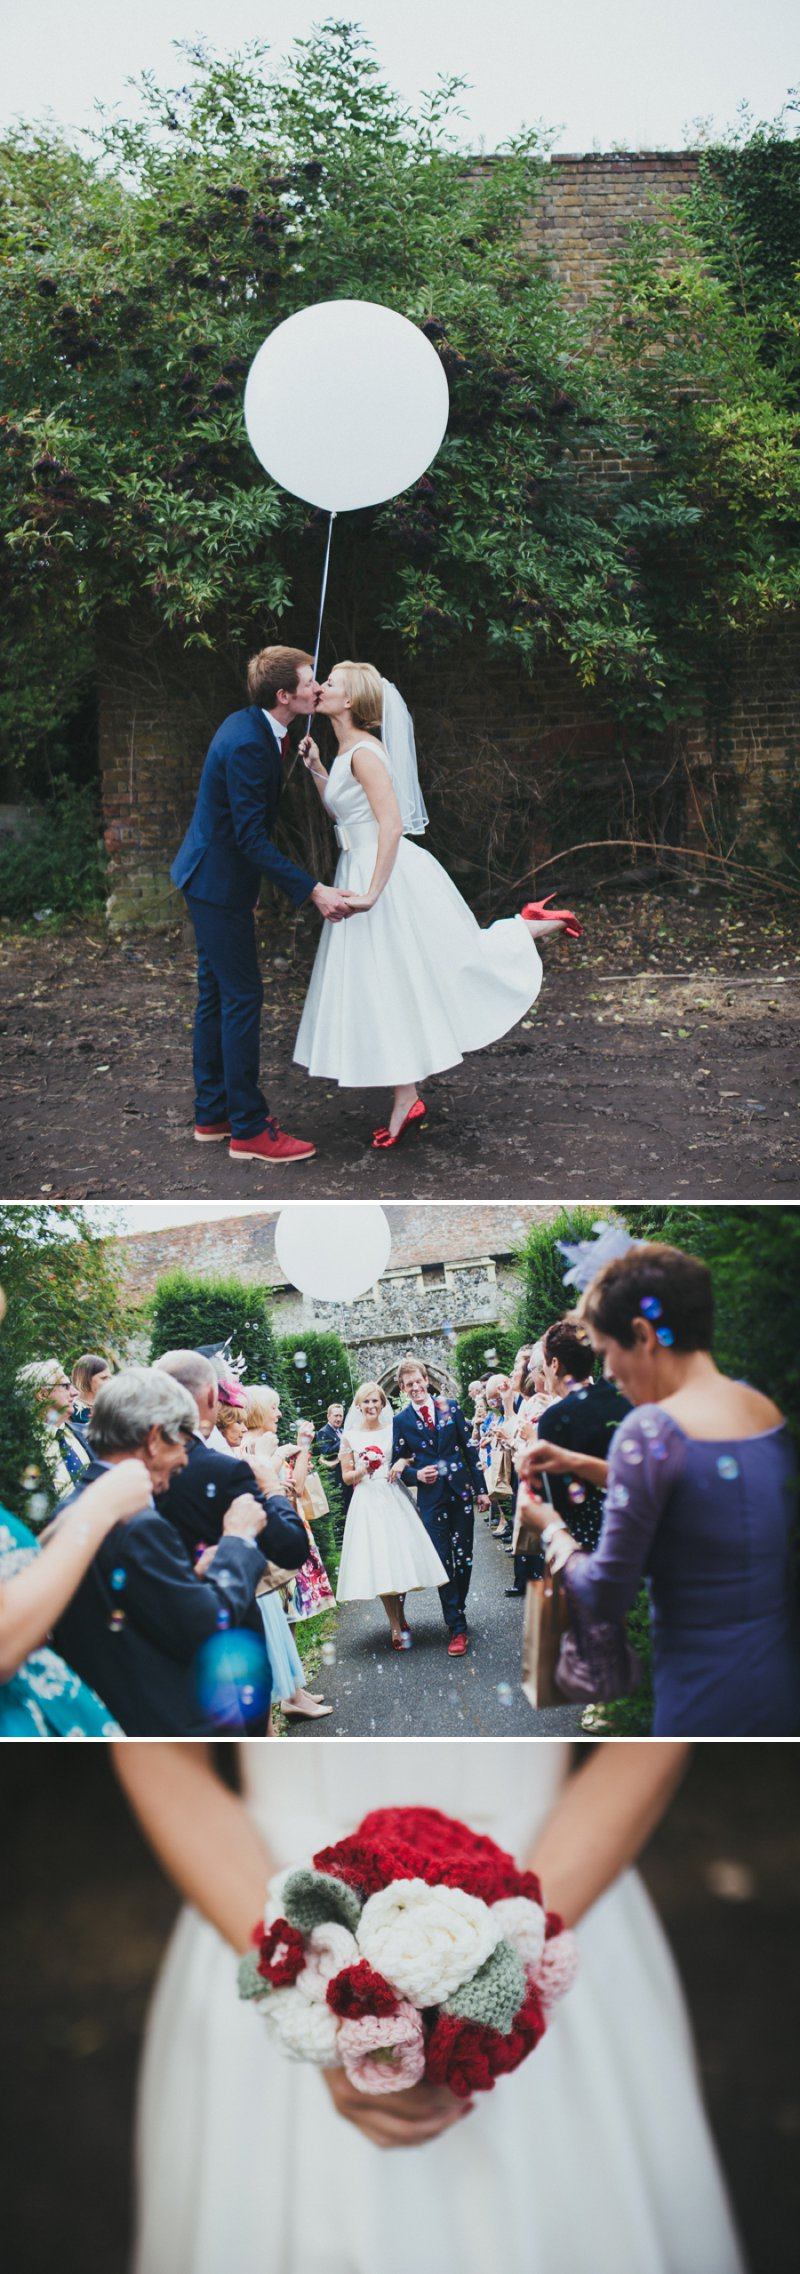 Vintage Inspired DIY Wedding At Kingston Village Hall With Bride In 50s Style Tea Length Gown And Groom In Topman Suit With Red Shoes And Knitted Bouquets Ties And Corsages With Fete Games And A Coconut Shy 1 The Family Tree.